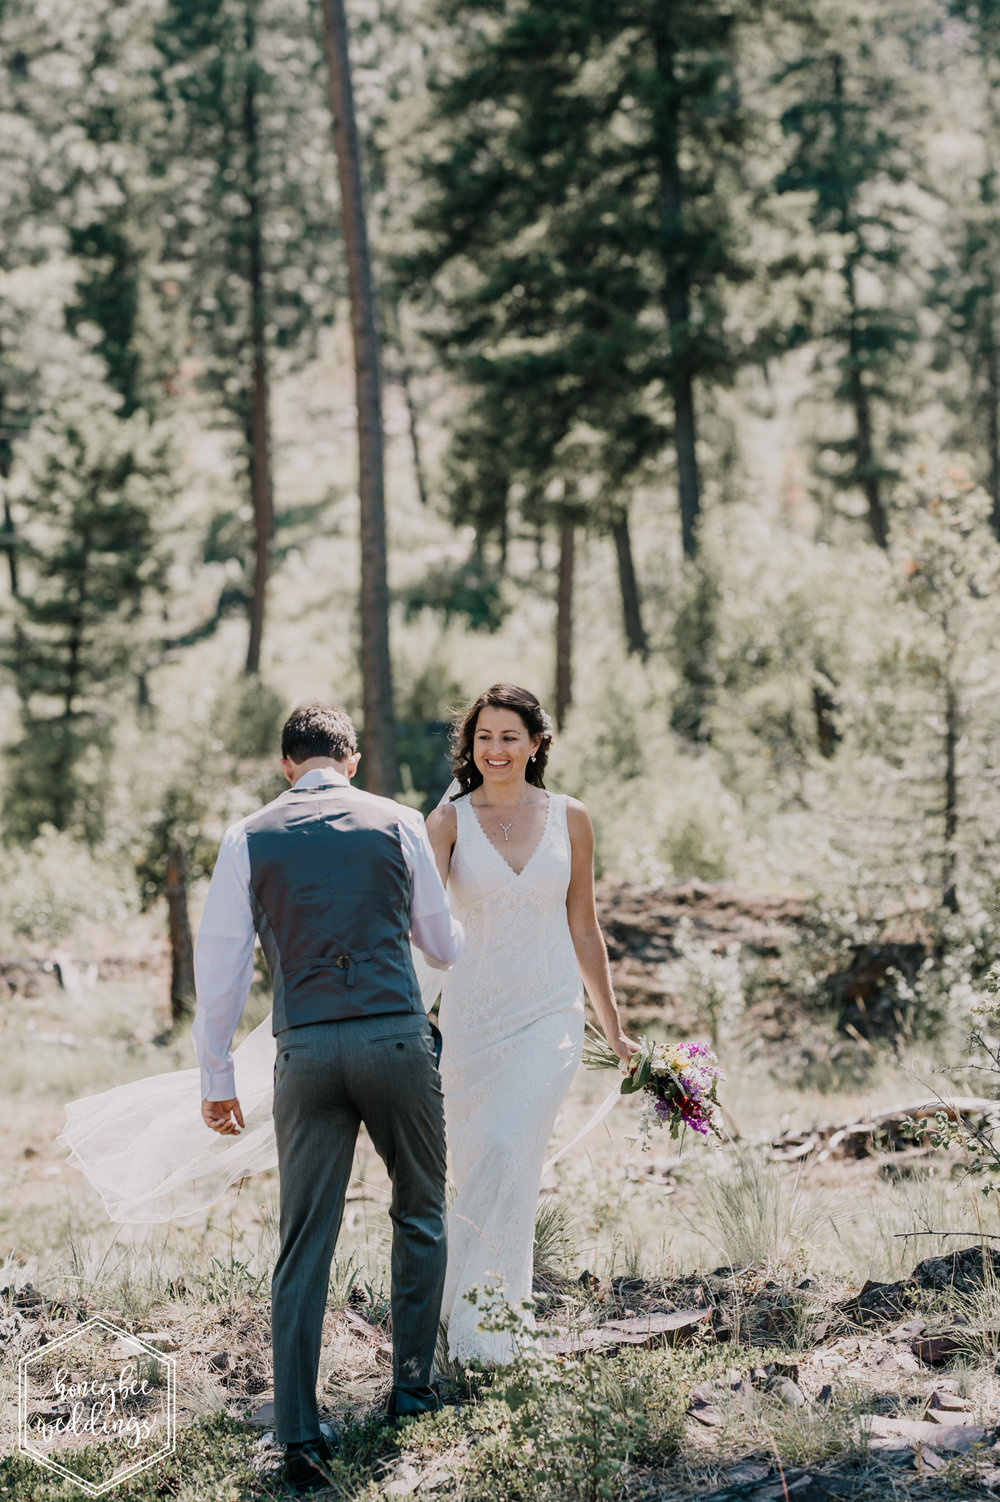 161 White Raven Wedding_Montana Wedding Photographer_Honeybee Weddings_ Meghan Maloney + Arza Hammond 2018-8432.jpg